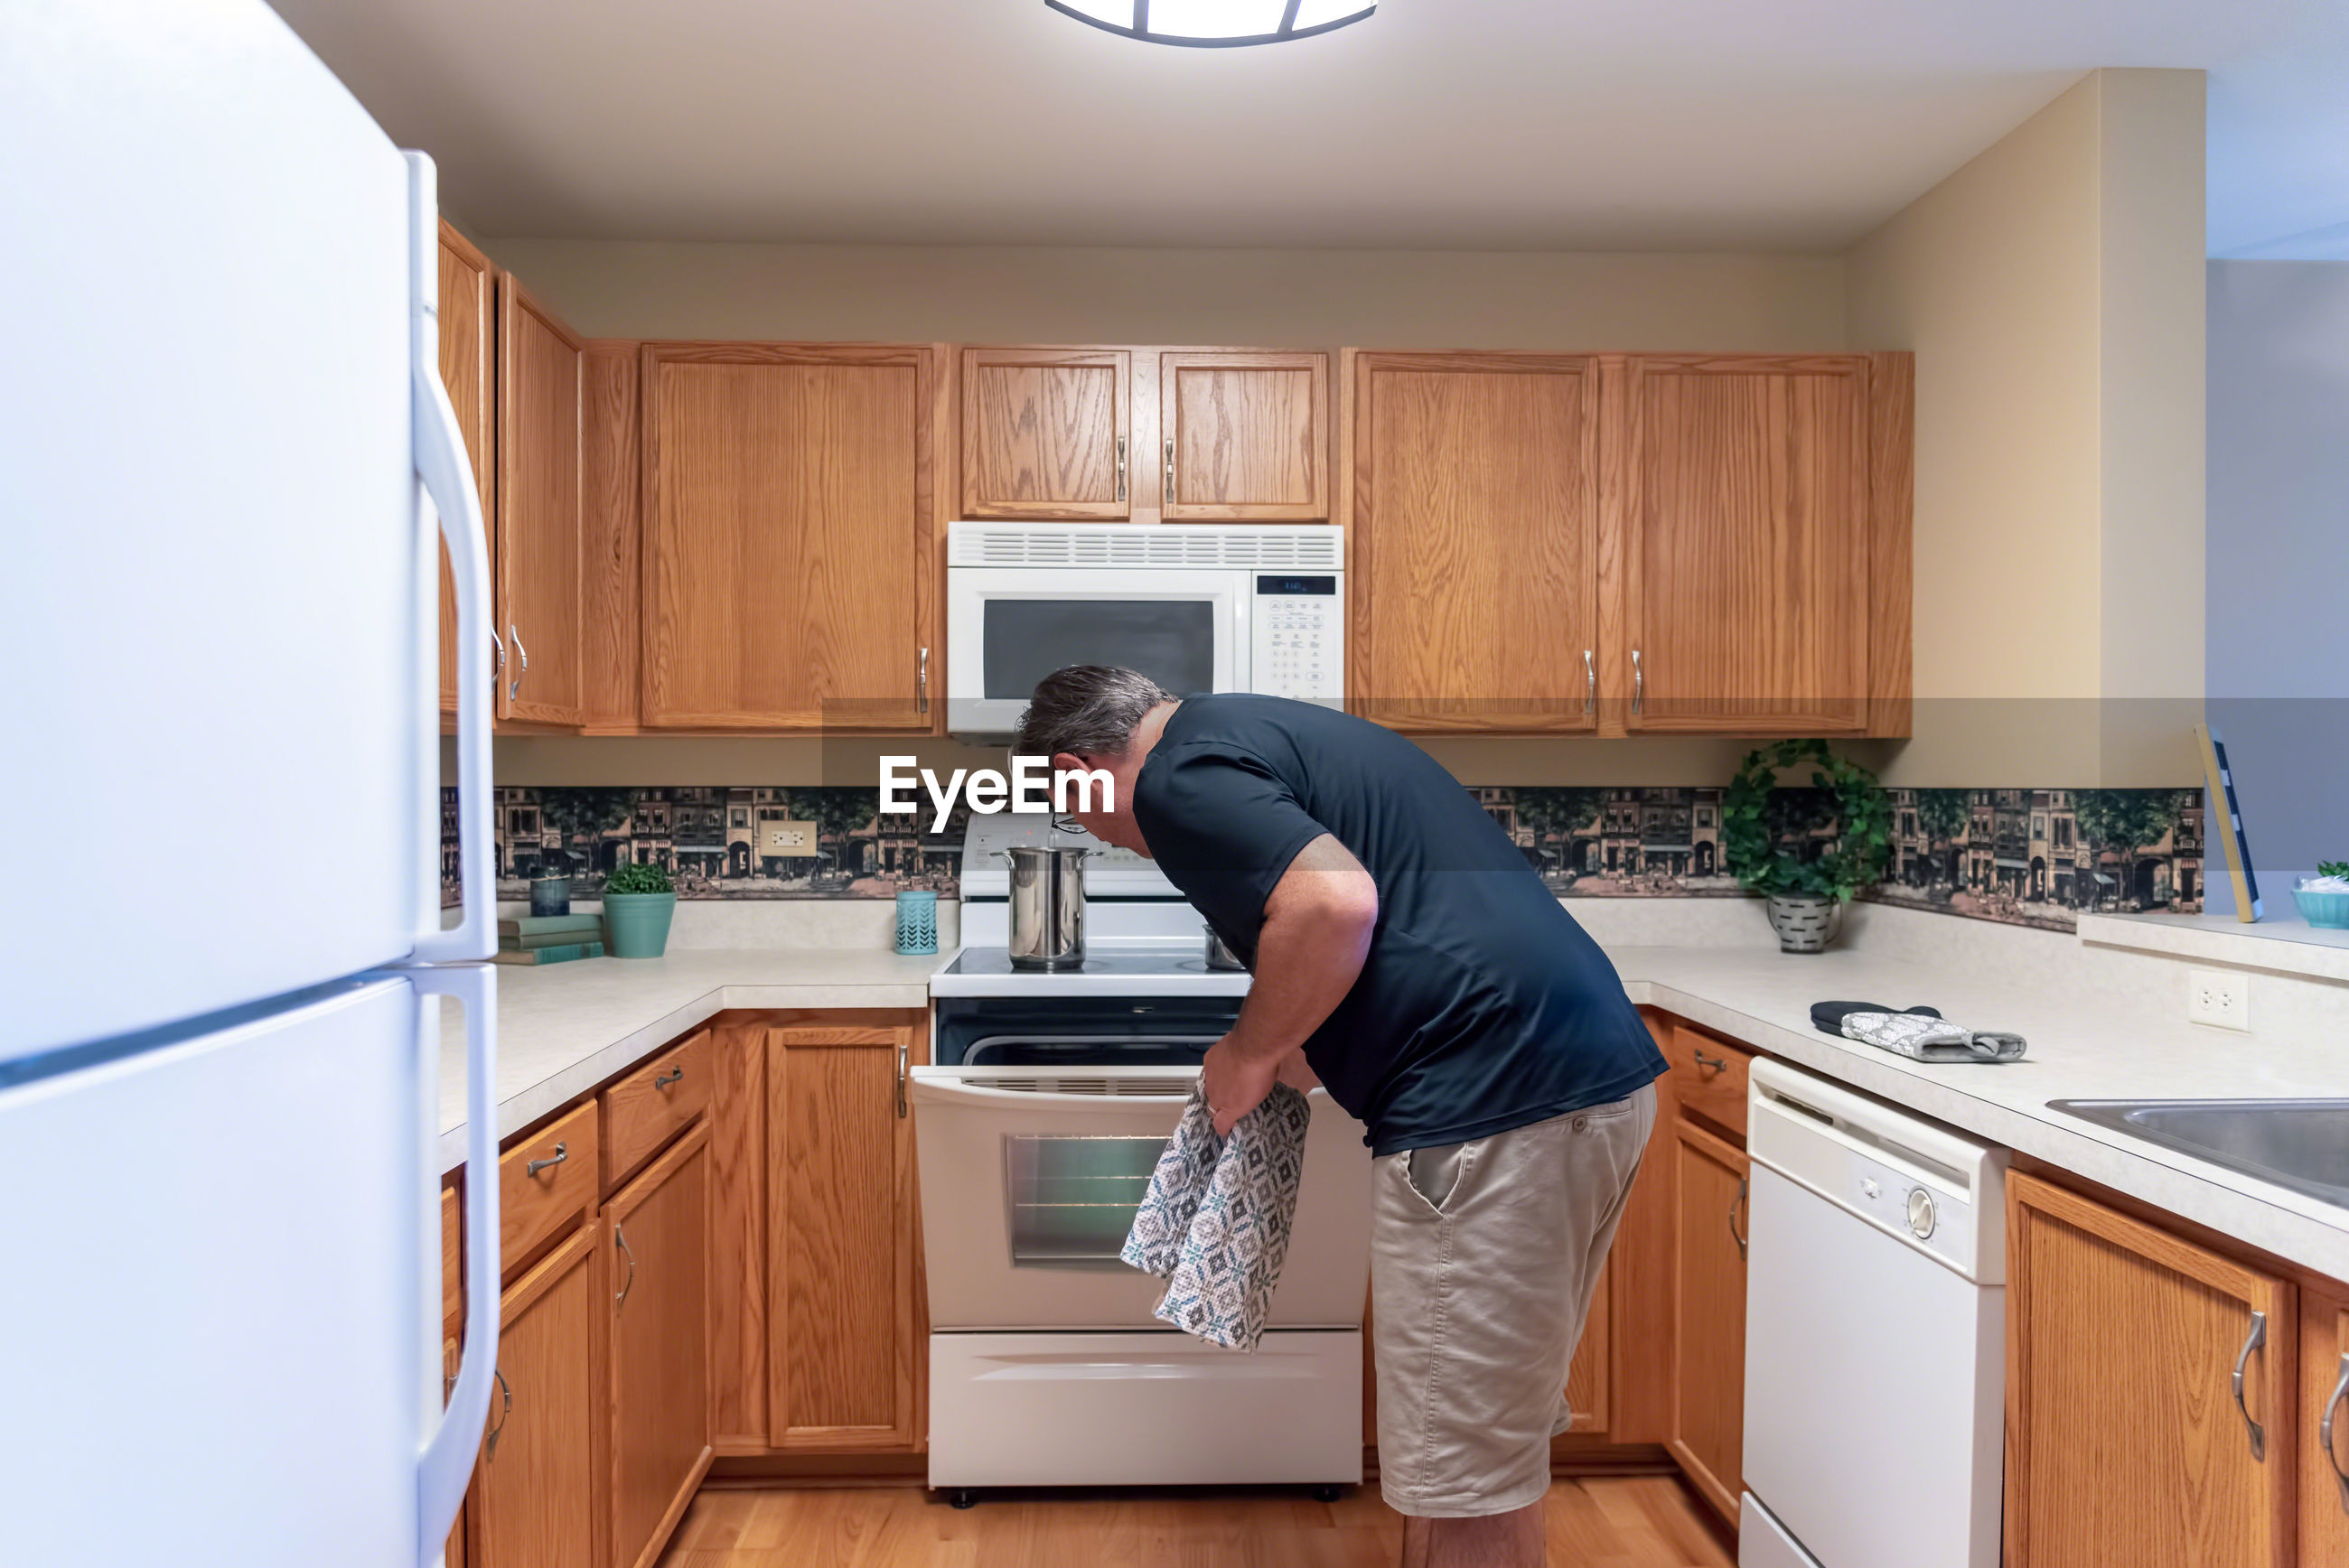 Man opening oven in kitchen at home